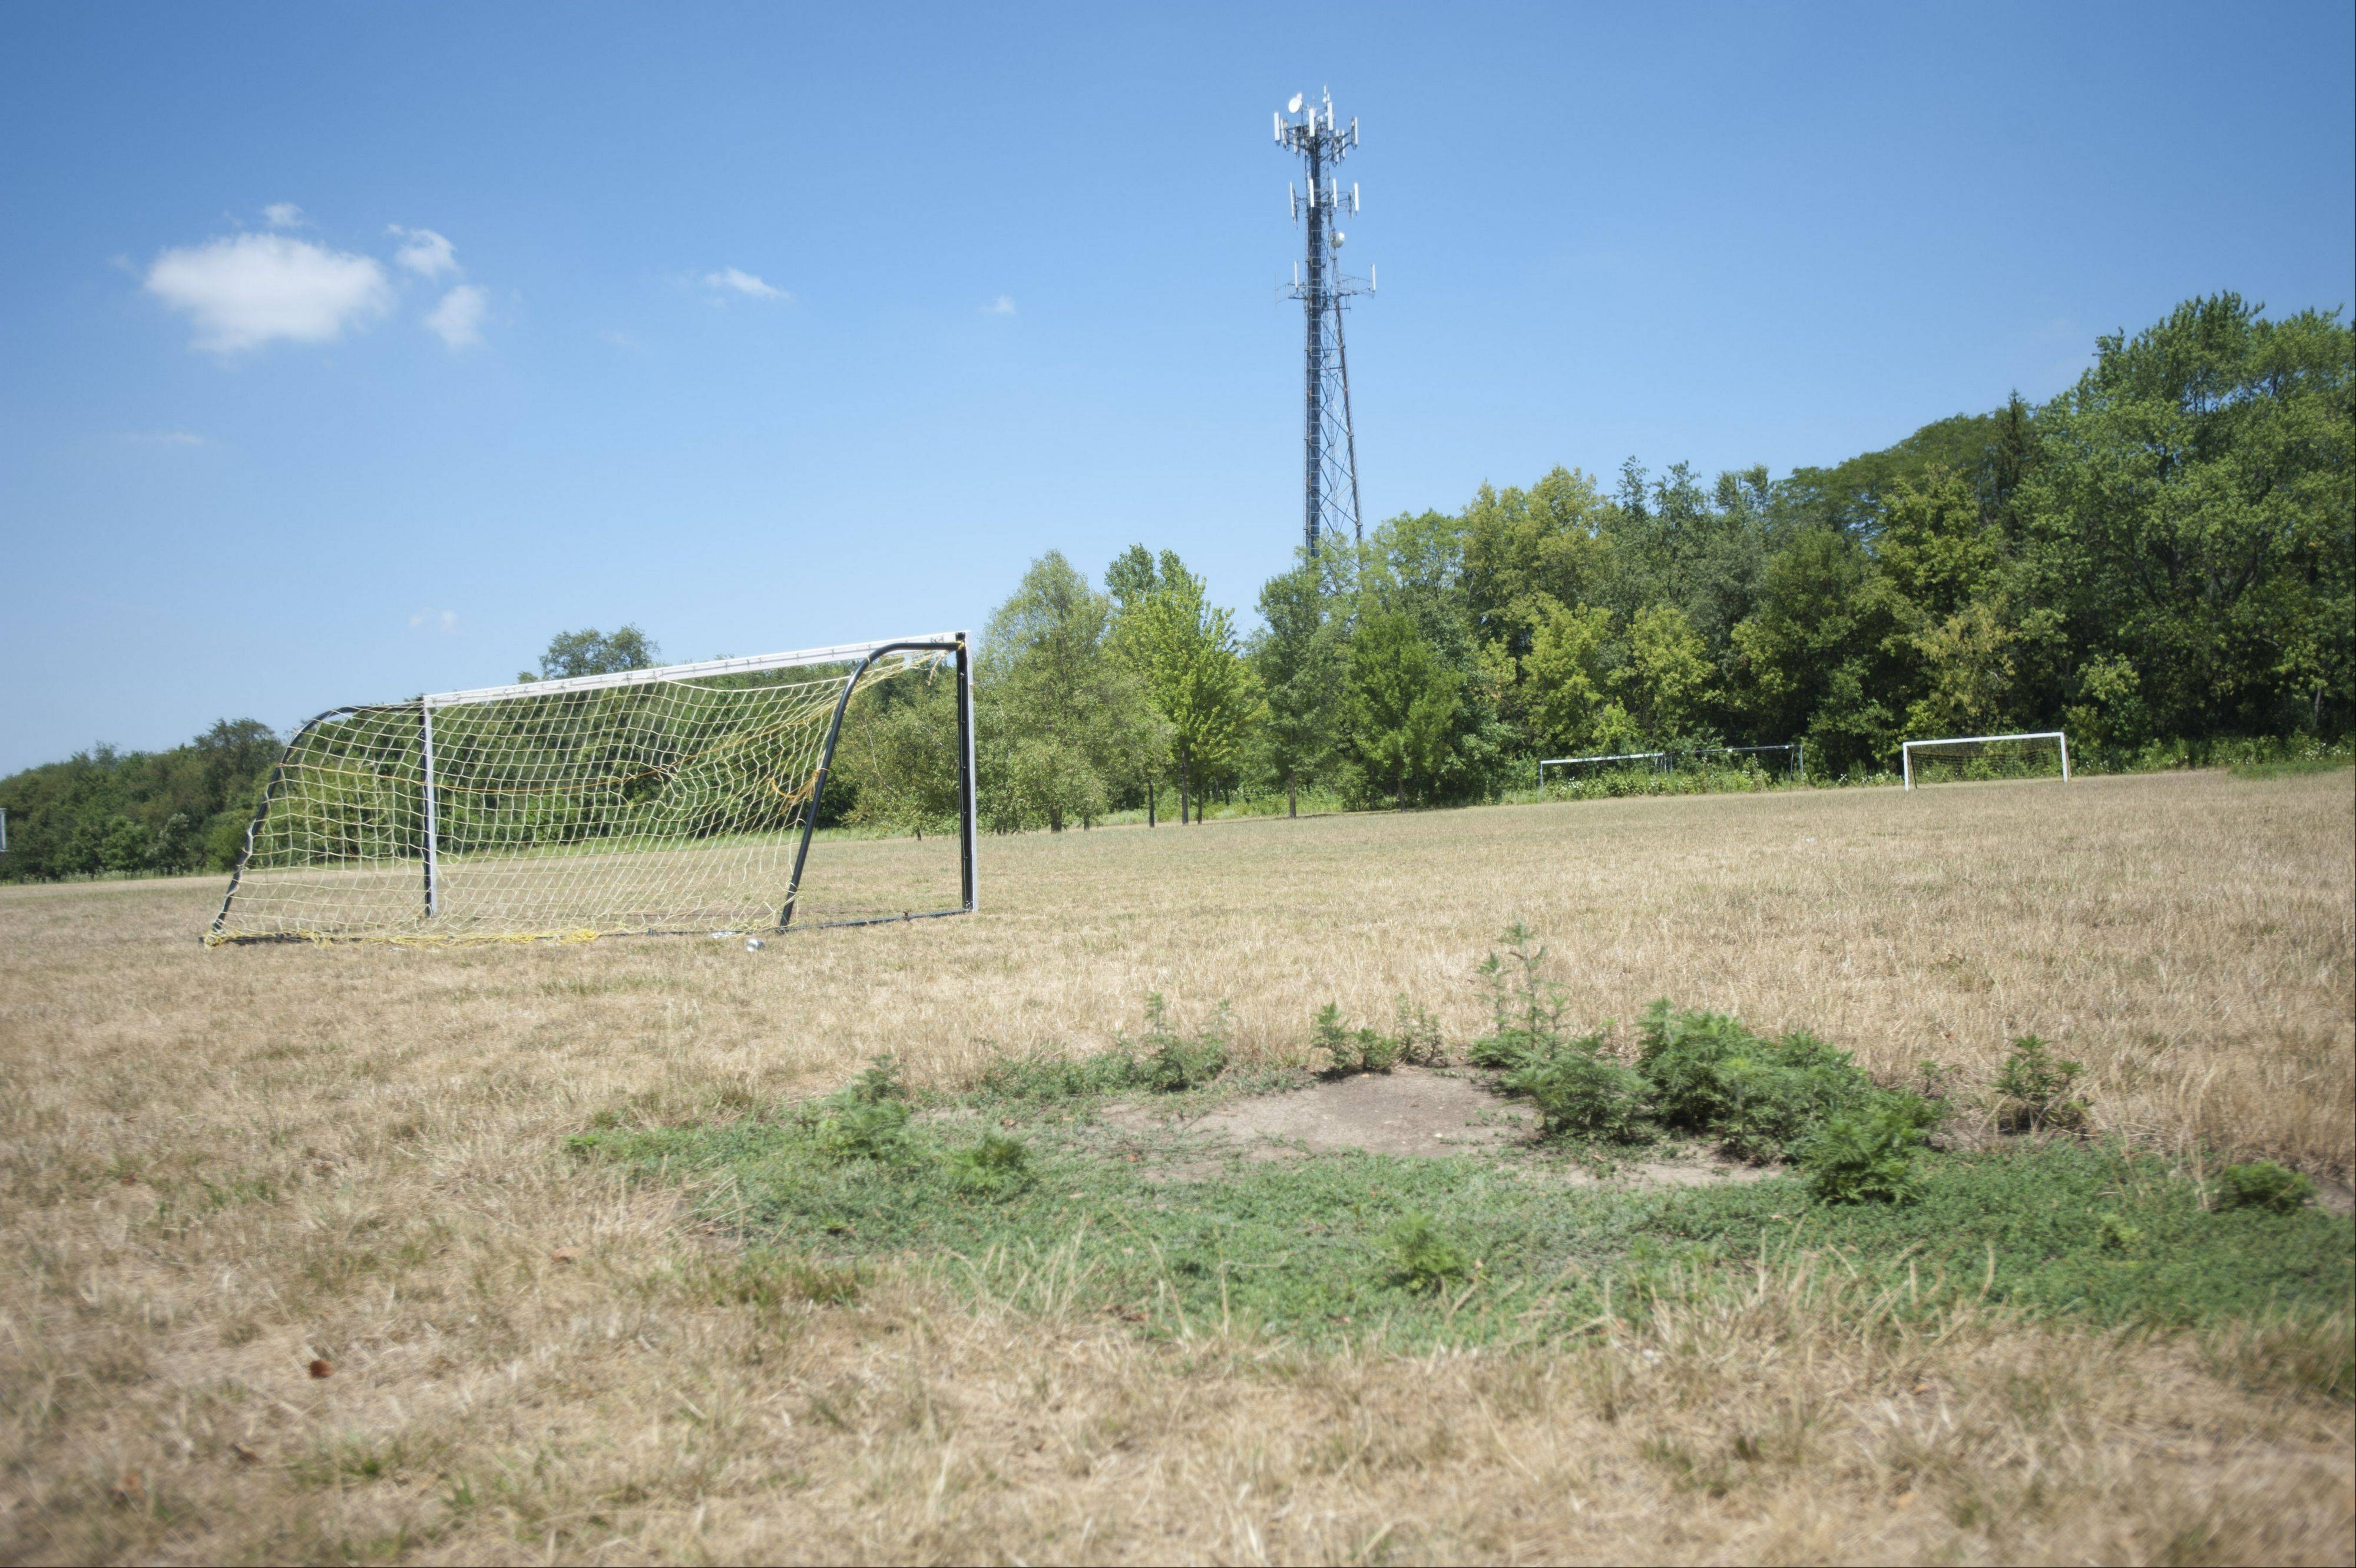 The last soccer games have been played at Meadow Glens Park in Naperville. The facility will be closed until the end of the year for a large-scale renovation.